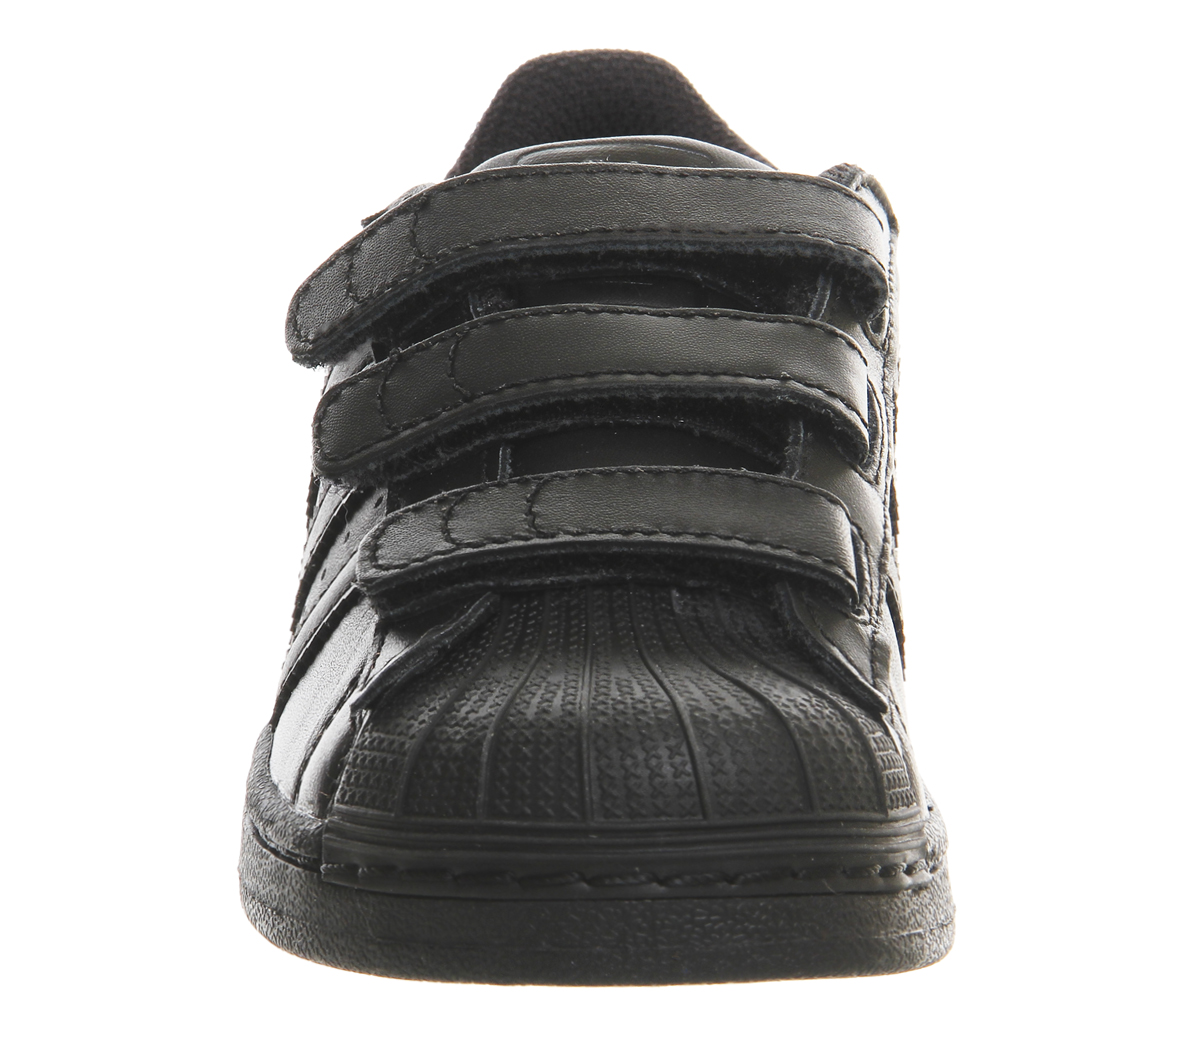 adidas superstar black kids